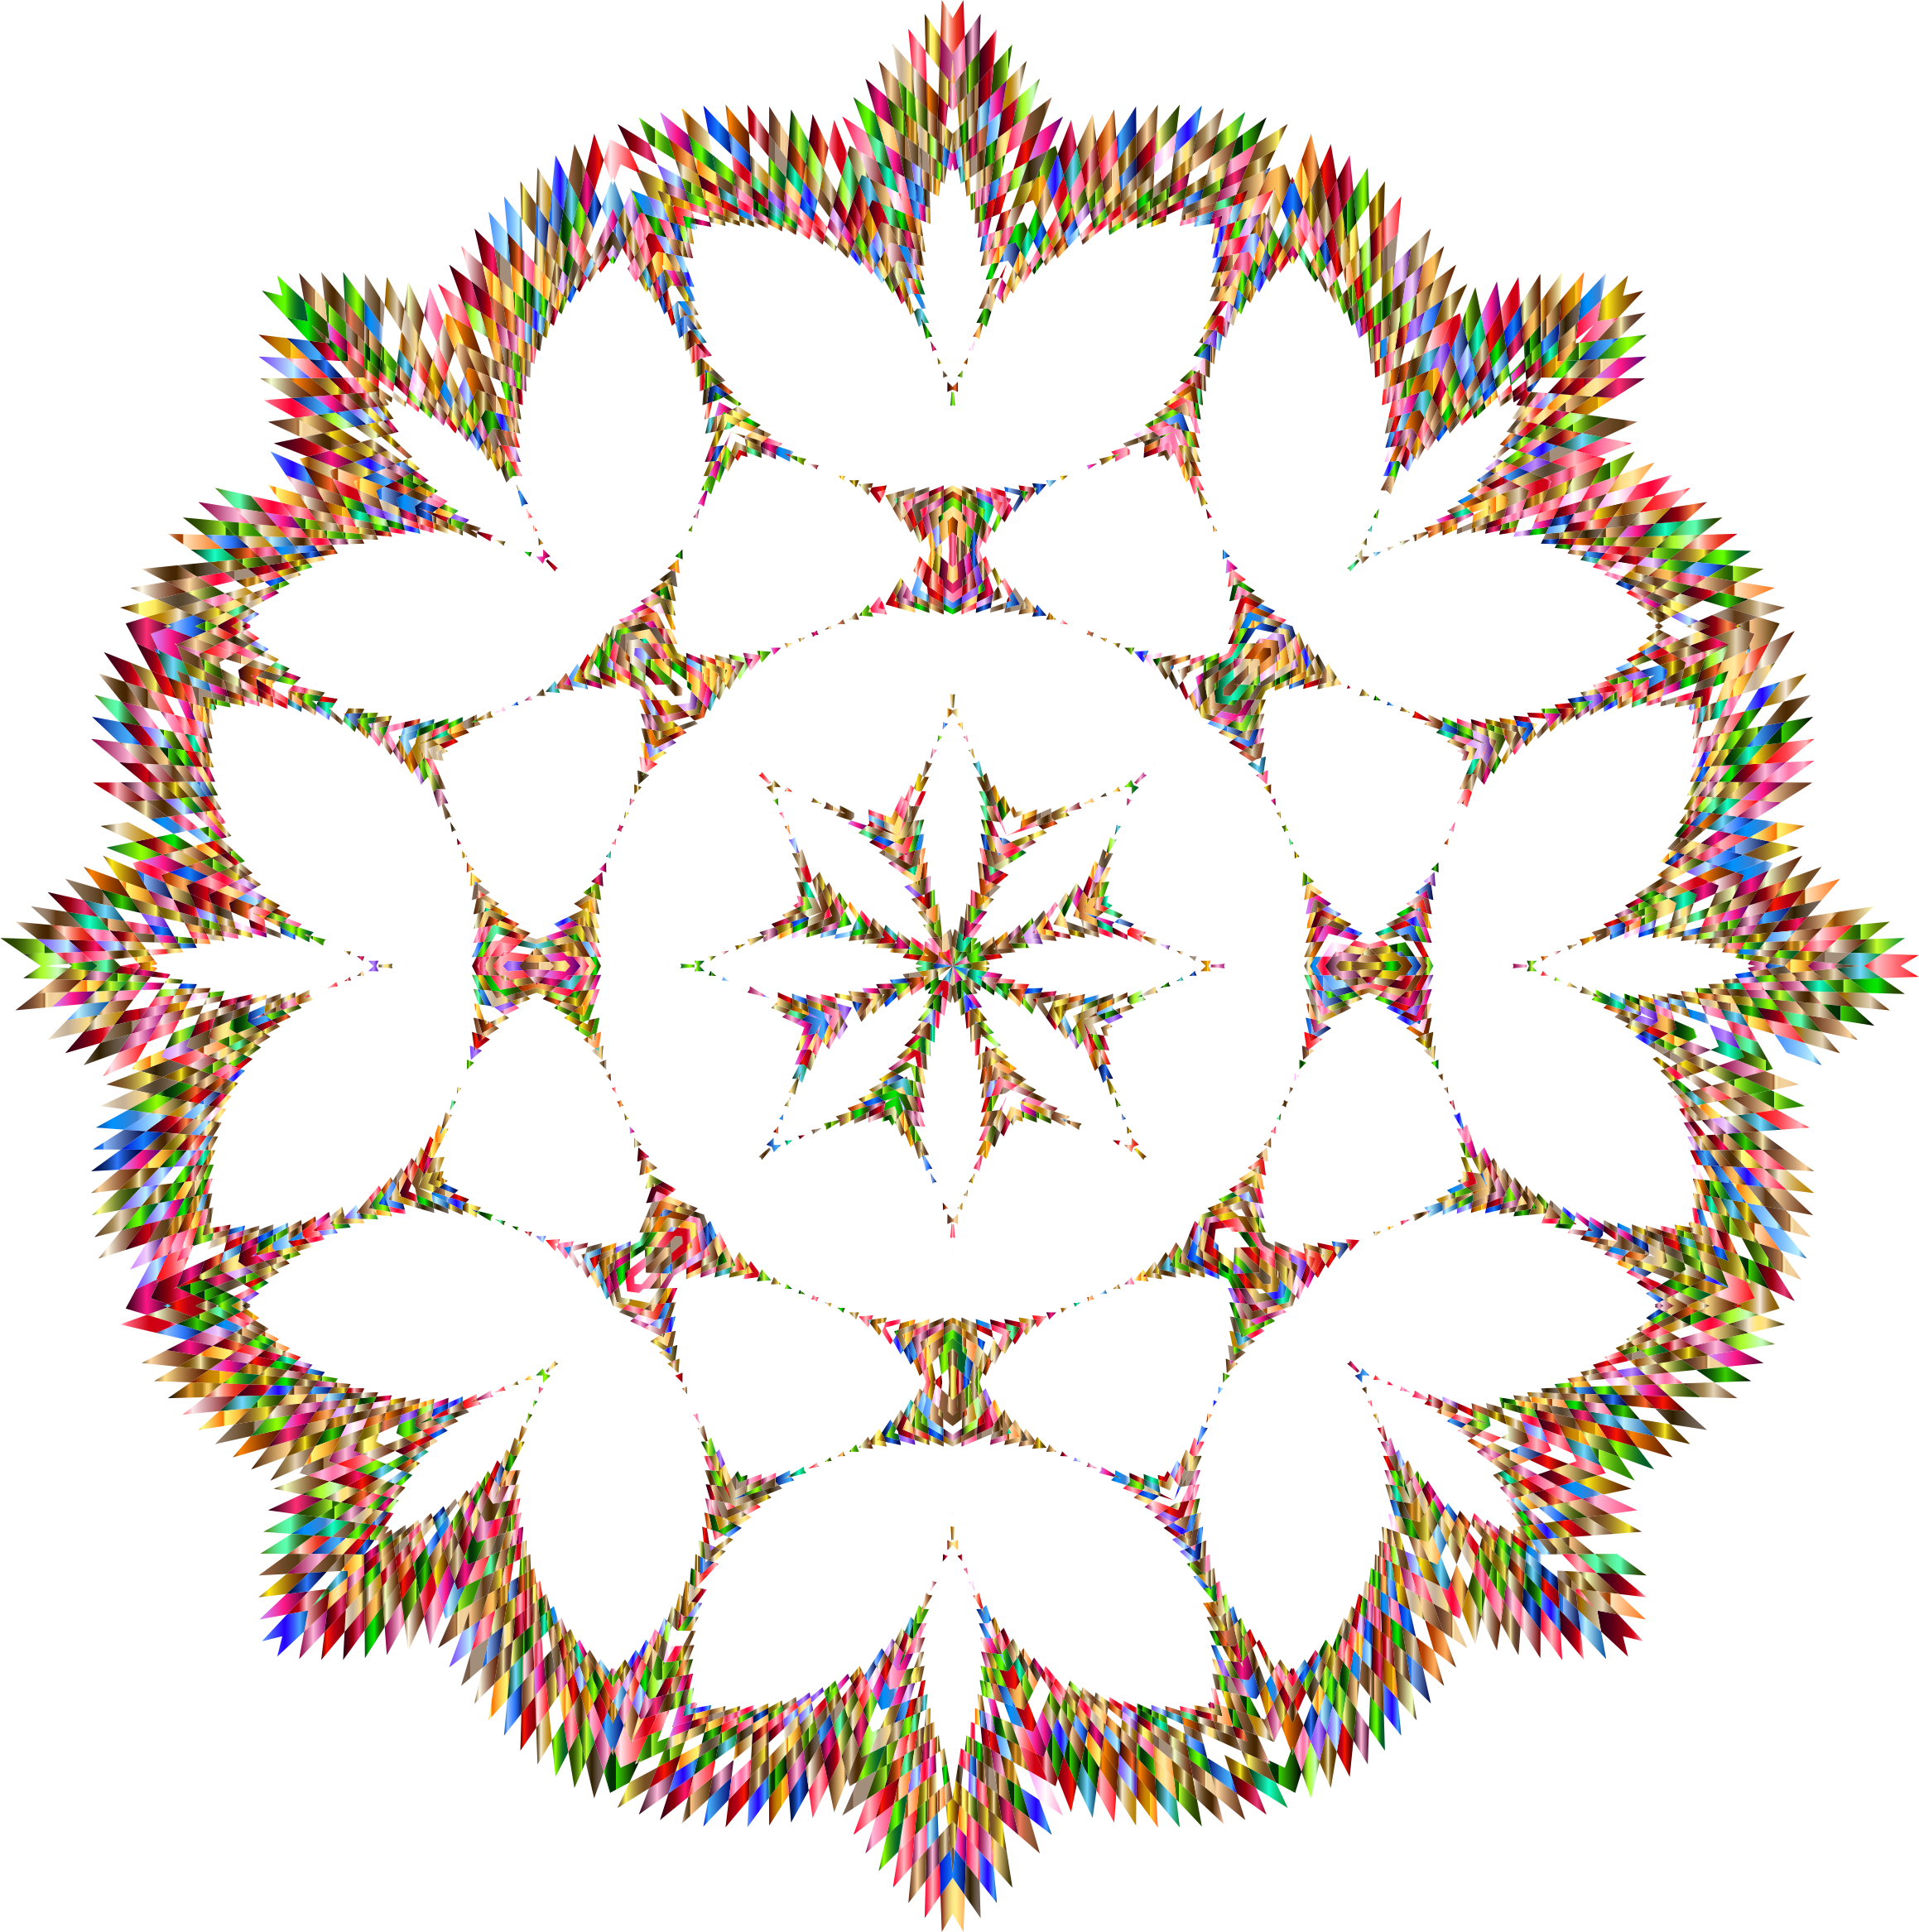 Clipart snowflake illustration. Jagged chromatic no background